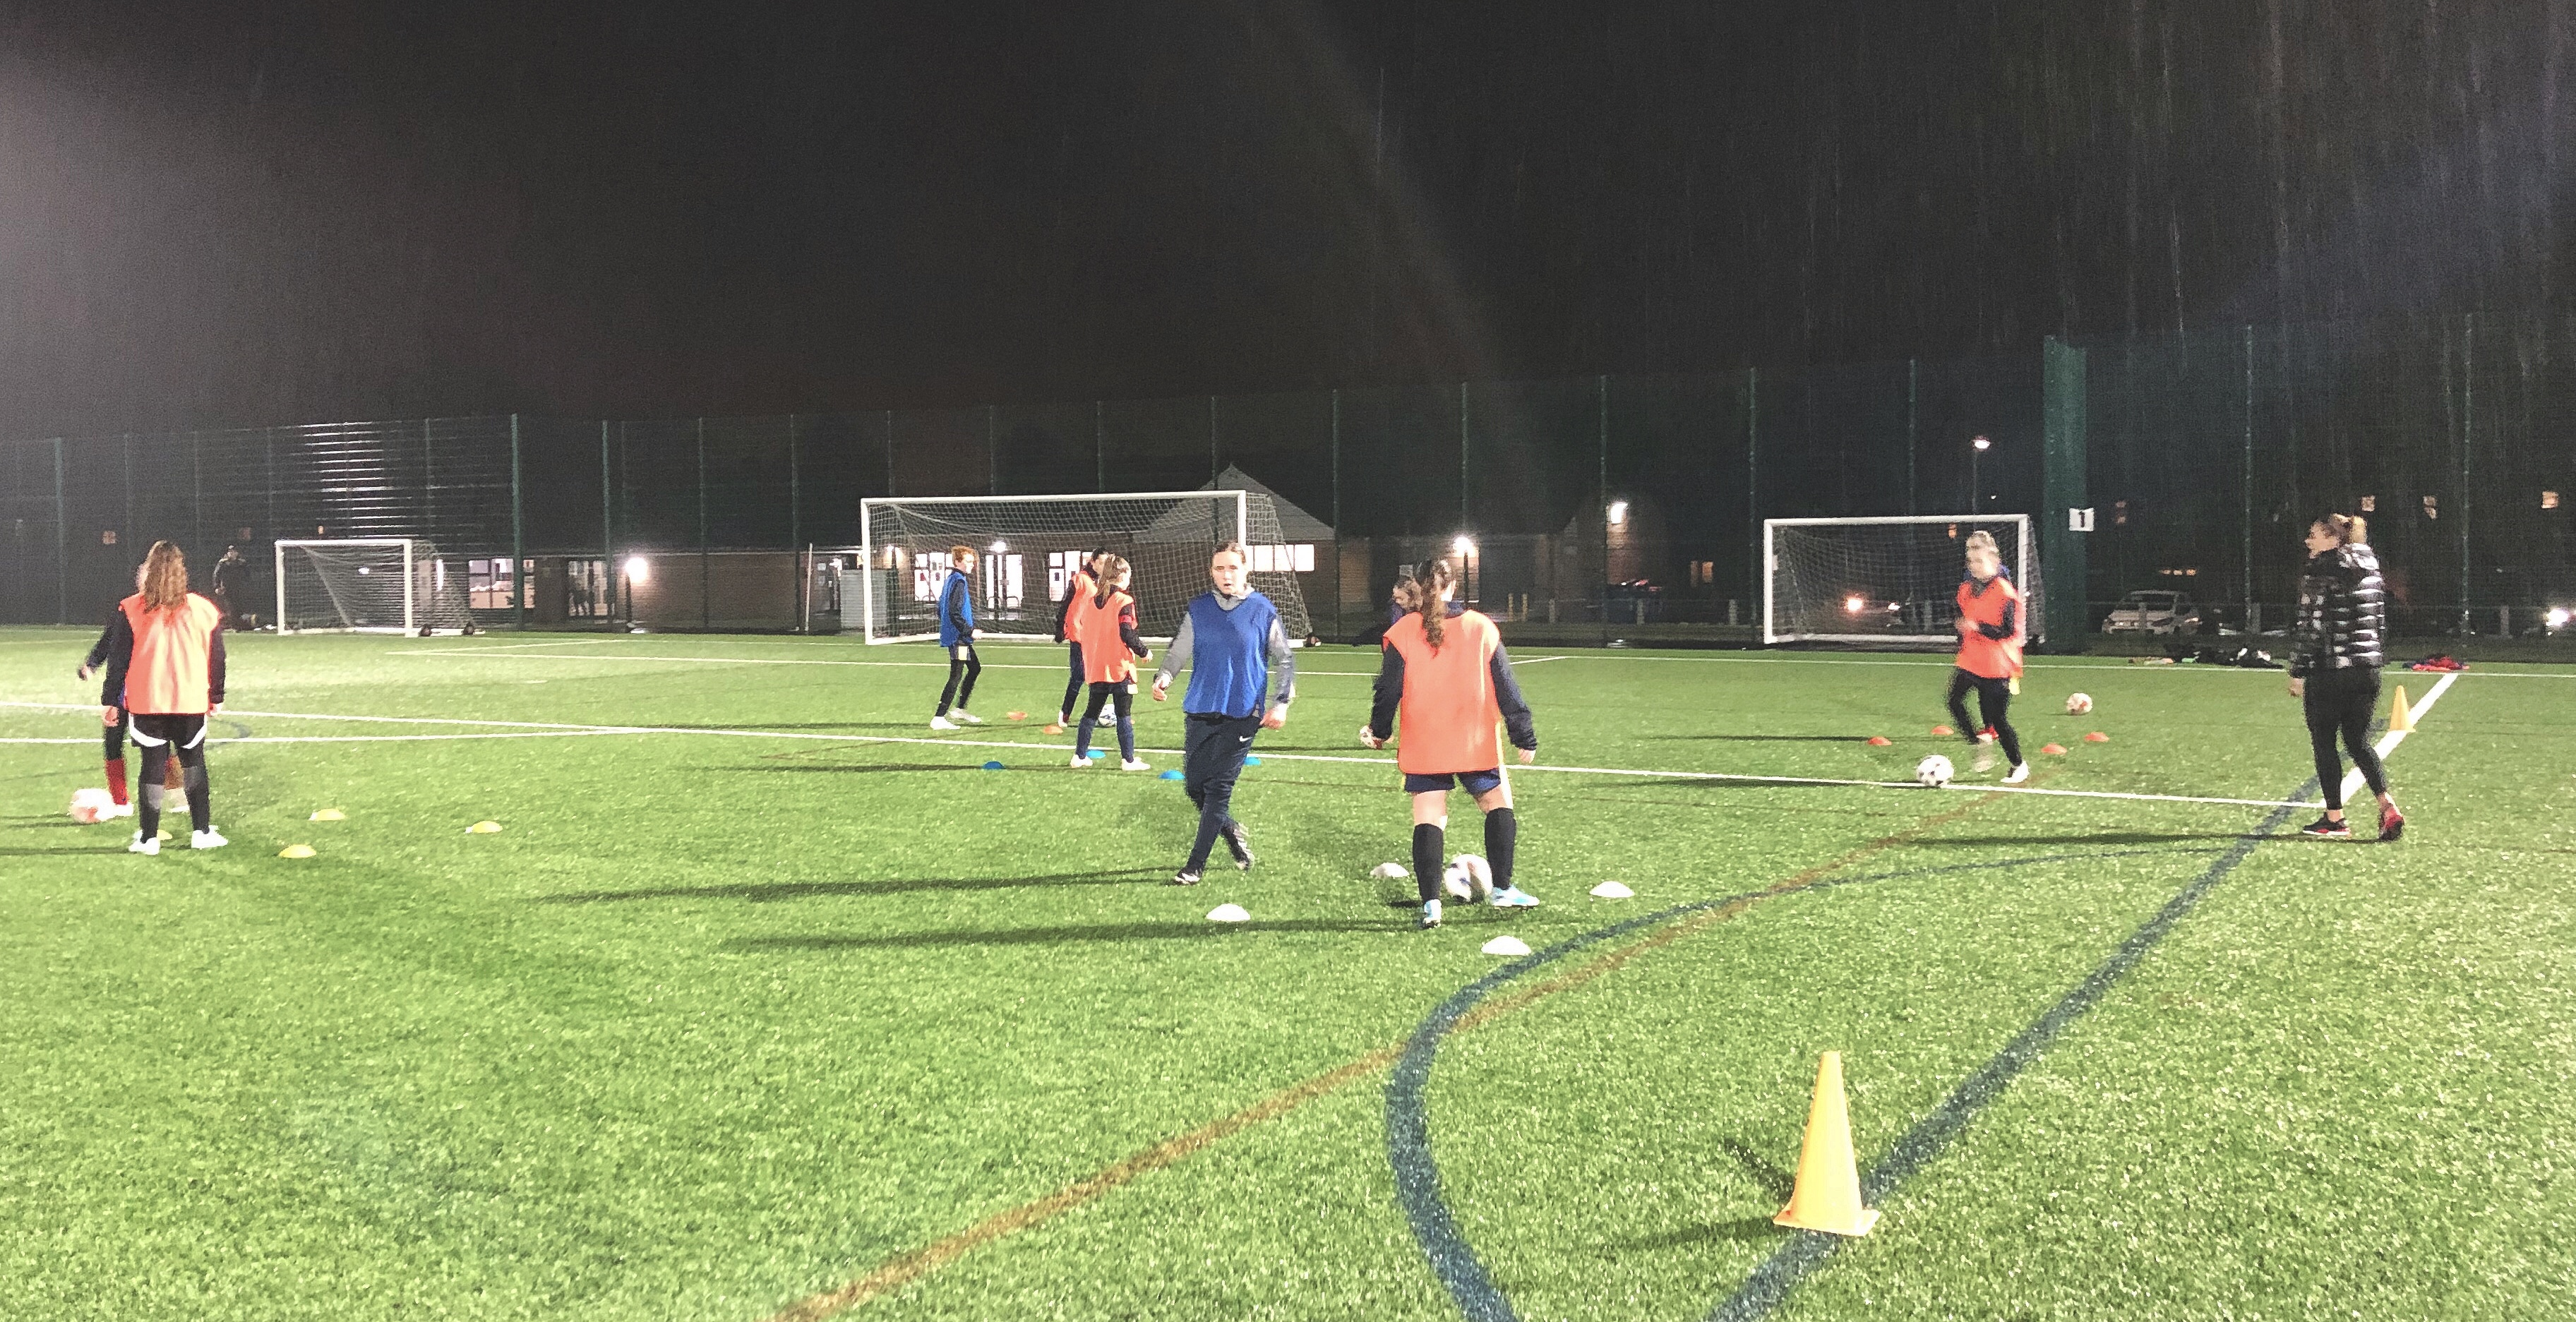 Havant & Waterlooville Girls being coached by Reading Women's Kirsty Pearce